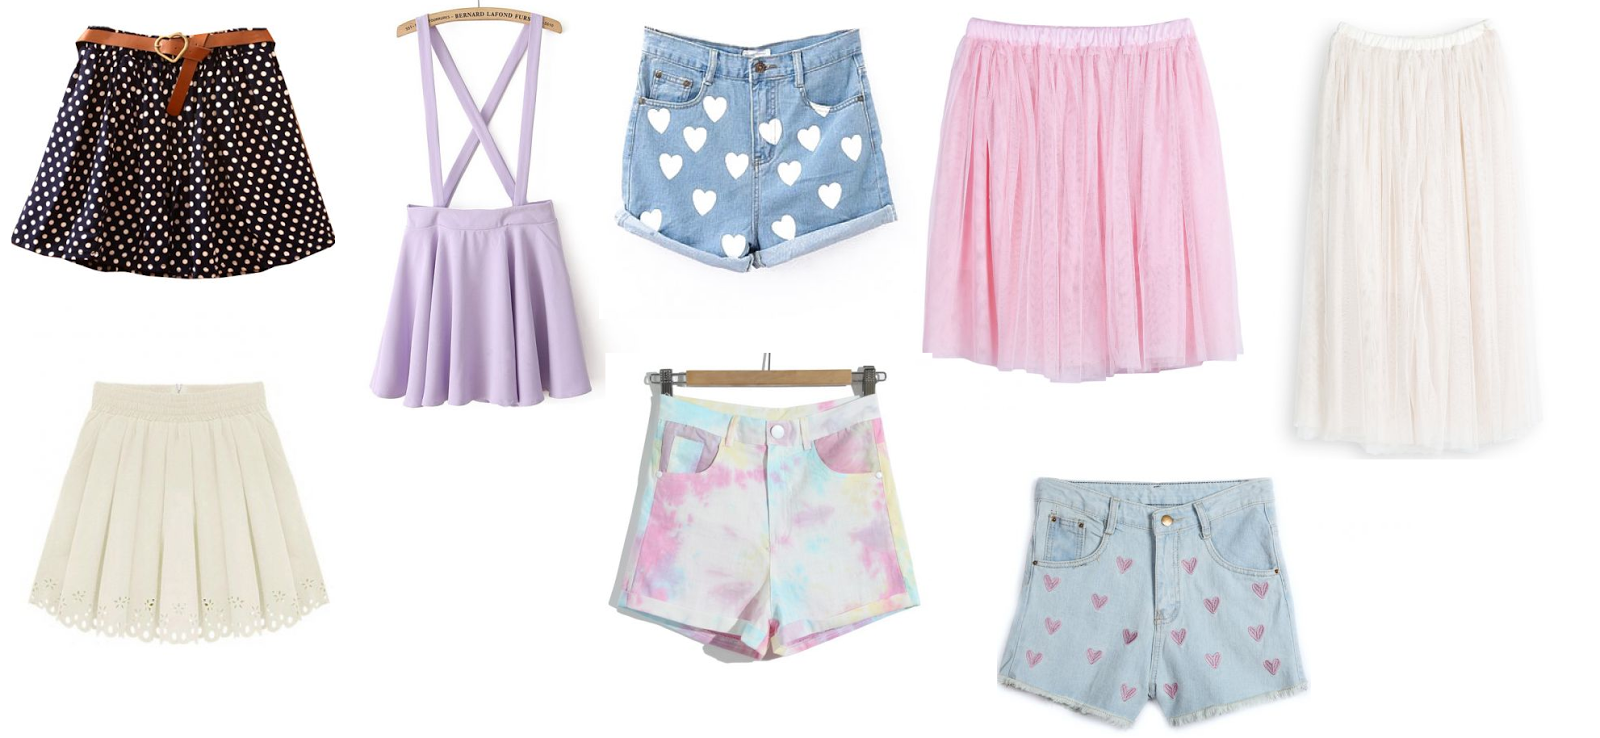 Girl In Summer Clothes PNG - 164556